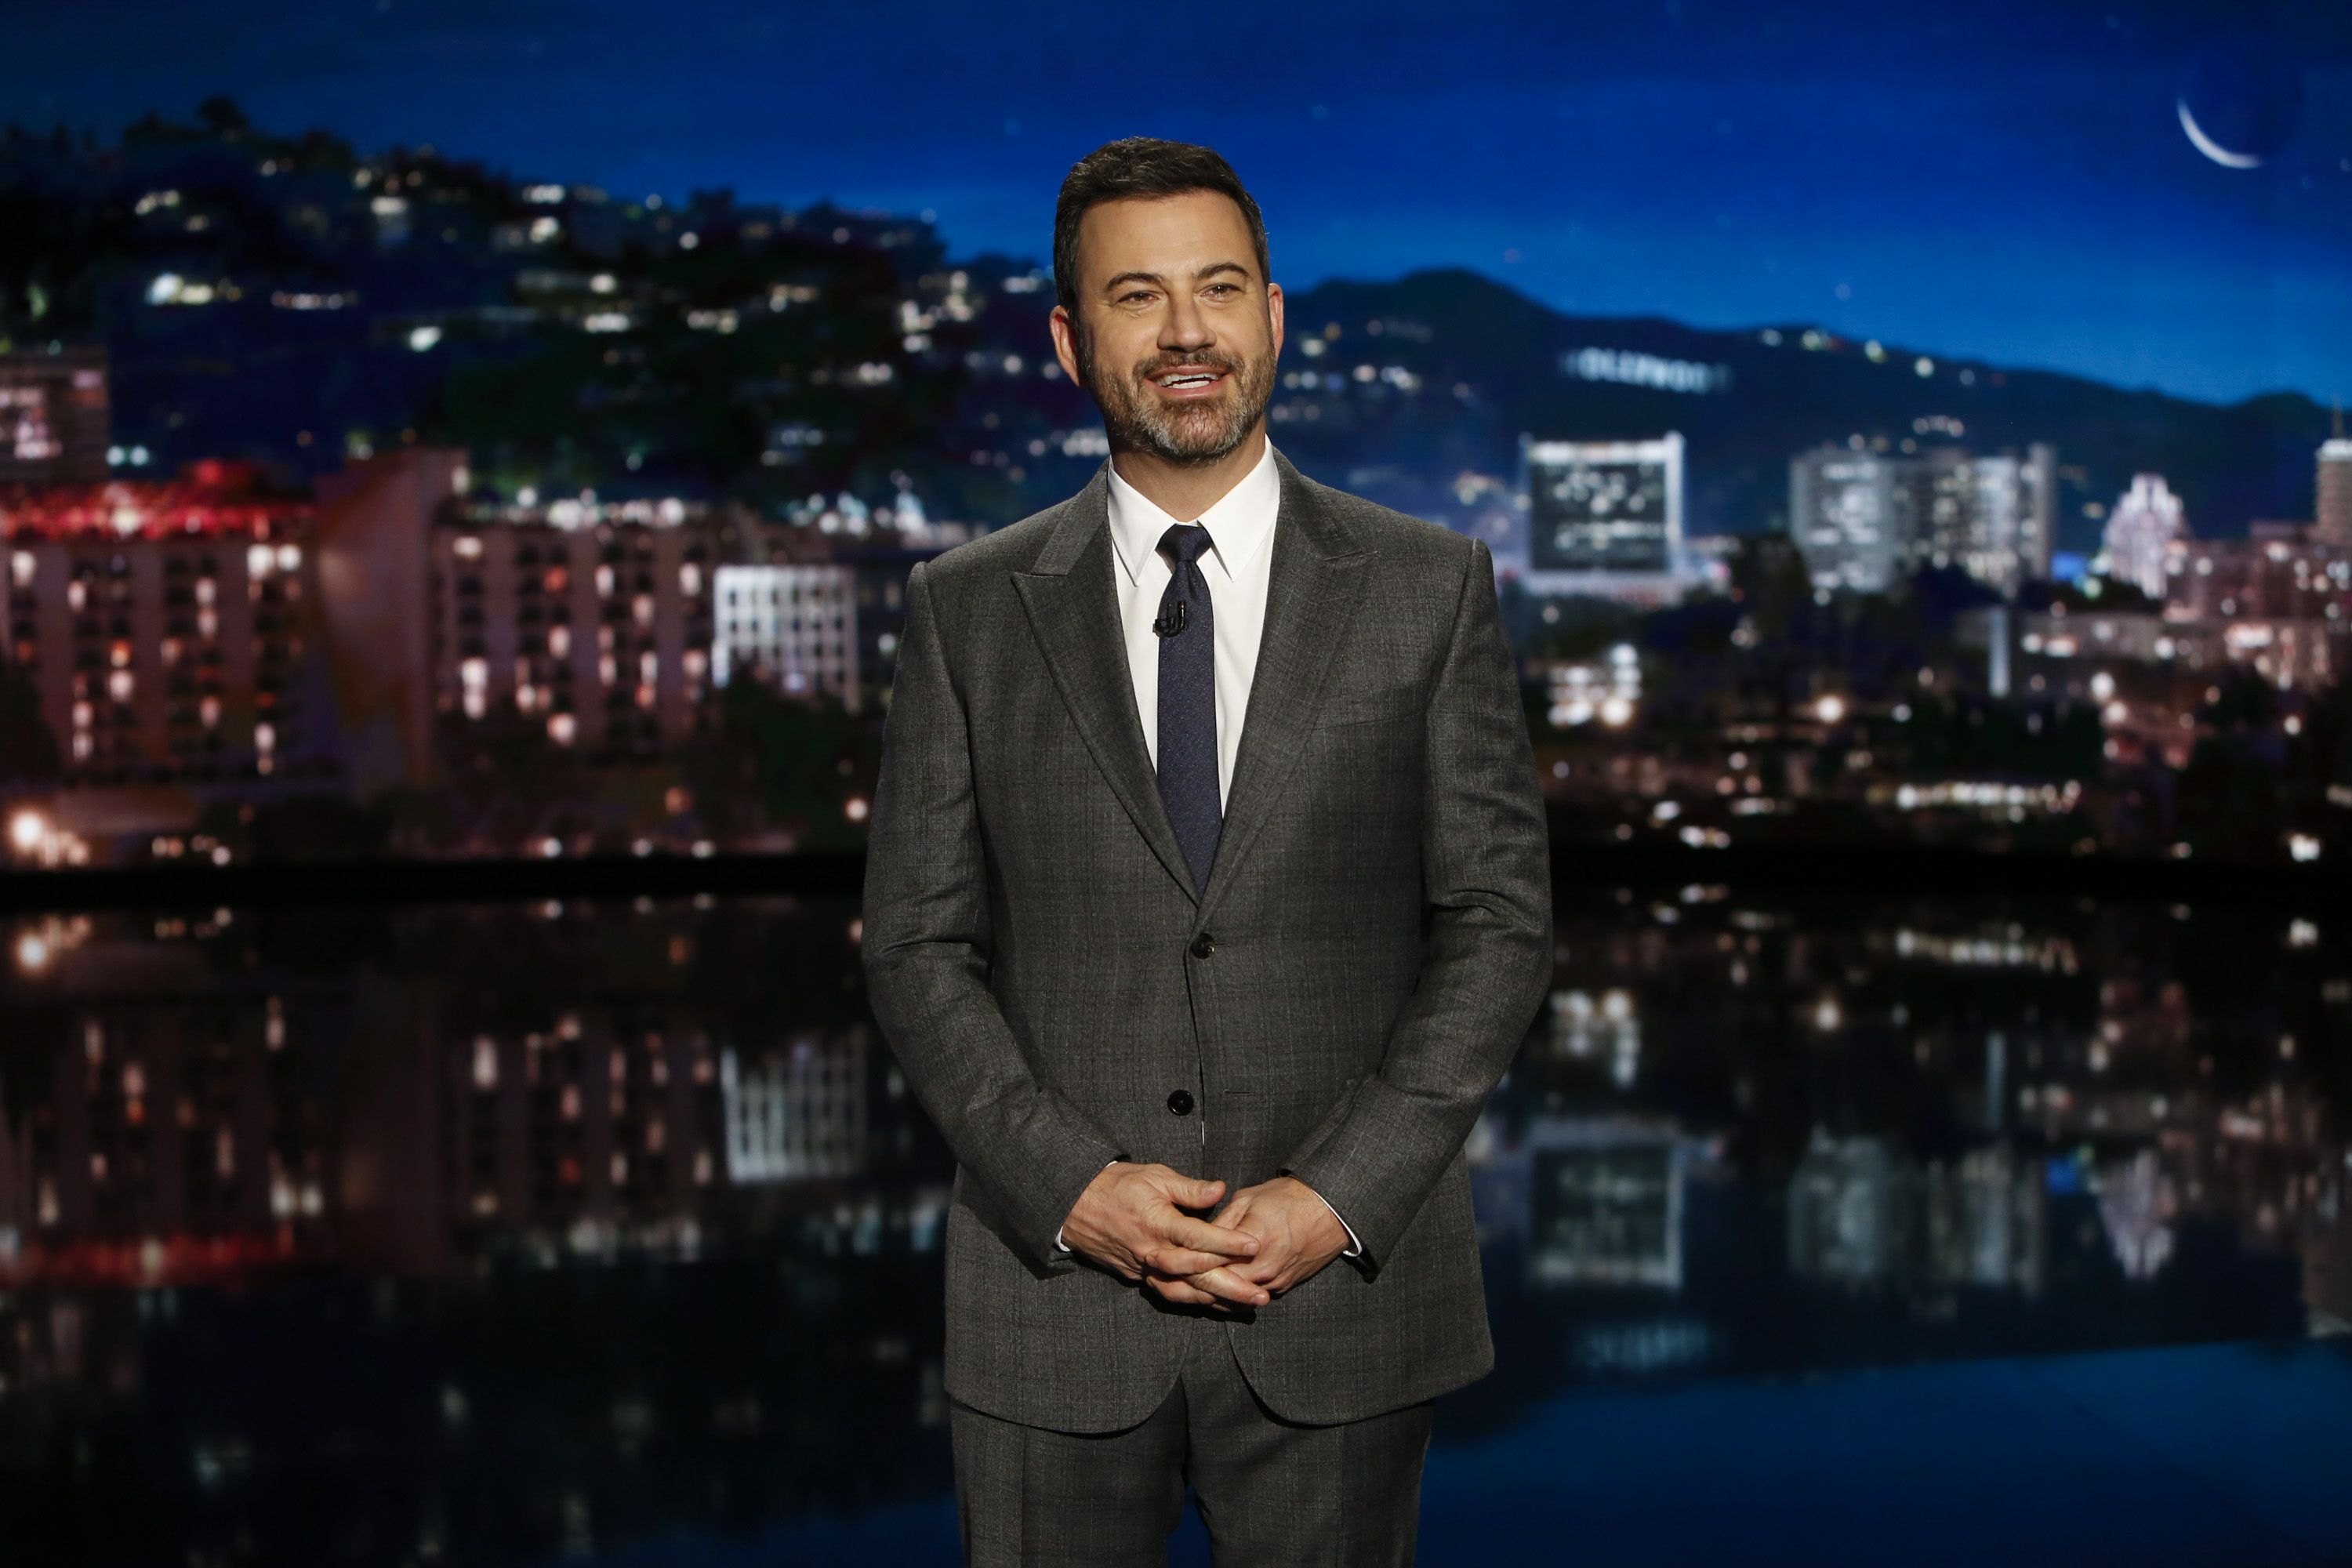 Roseanne\' Is Canceled, But Jimmy Kimmel Has an Idea to Save the Show